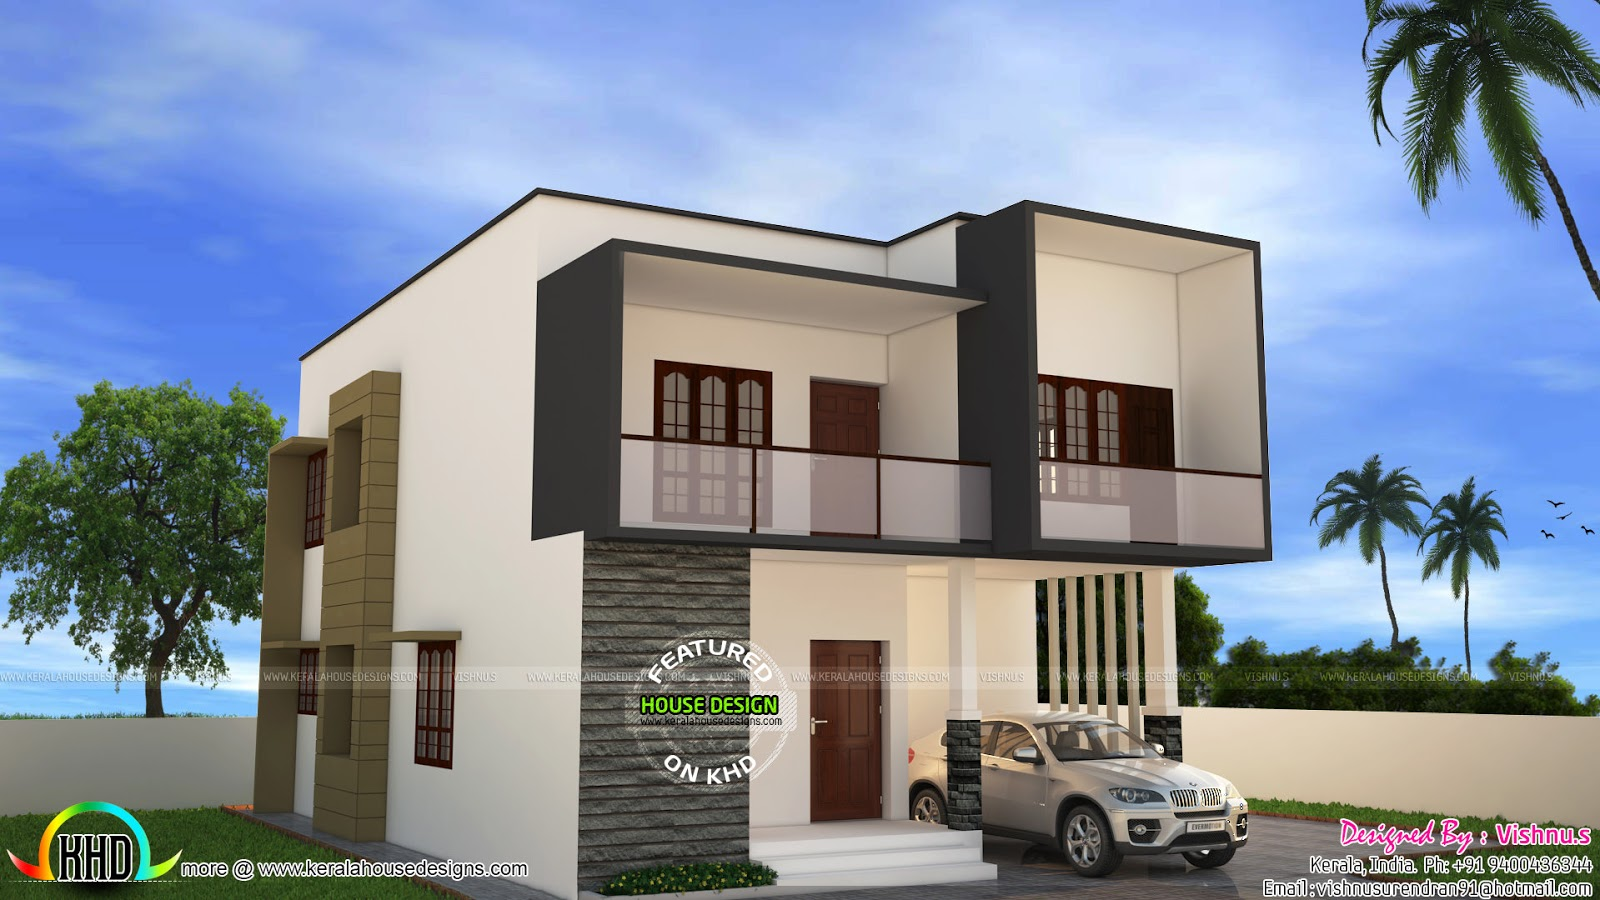 Simple modern house by vishnu s home design decor for Simple and modern house